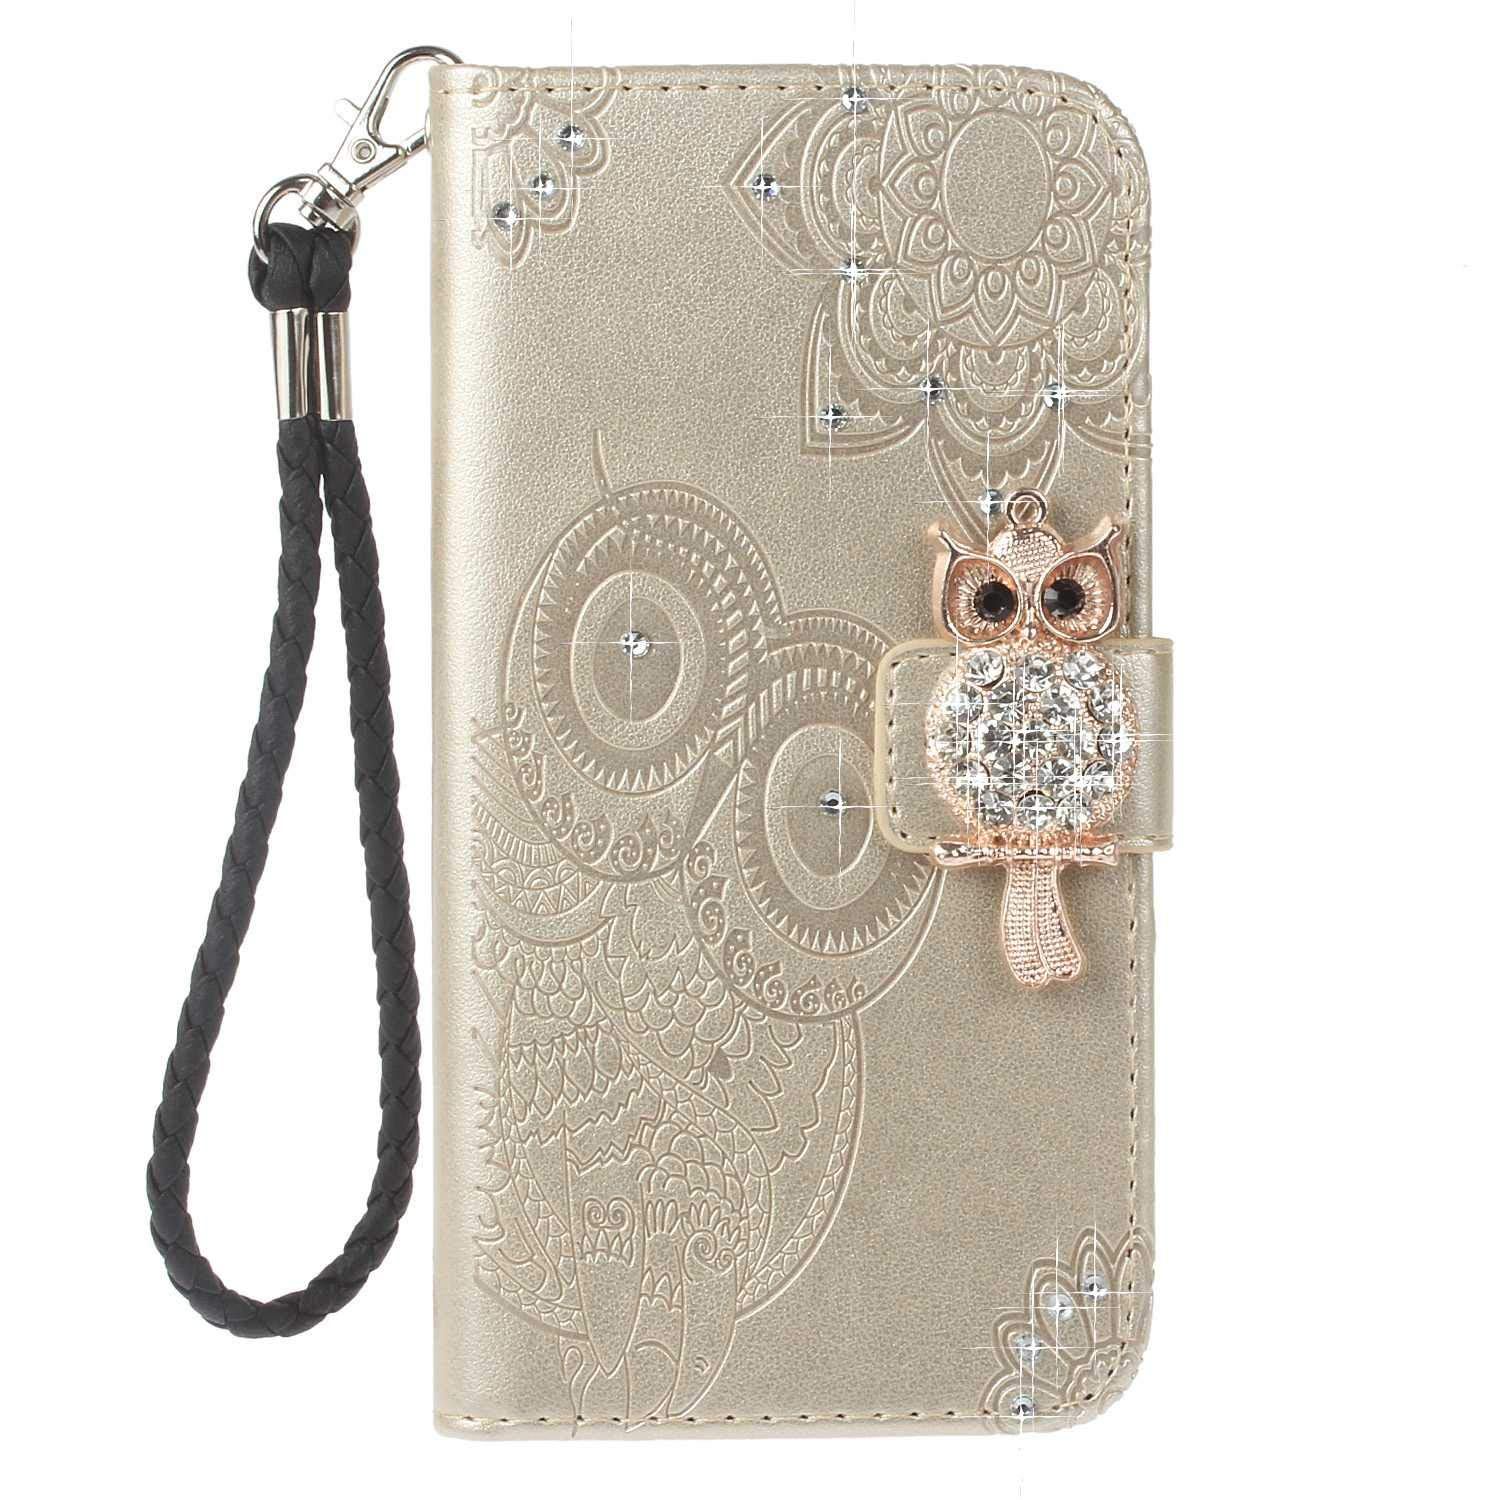 Bear Village Galaxy M30 Case, Leather Case with Wrist Strap and Credit Card Slot, Owl Magnetic Closure Shockproof Cover for Samsung Galaxy M30, Gold by Bear Village